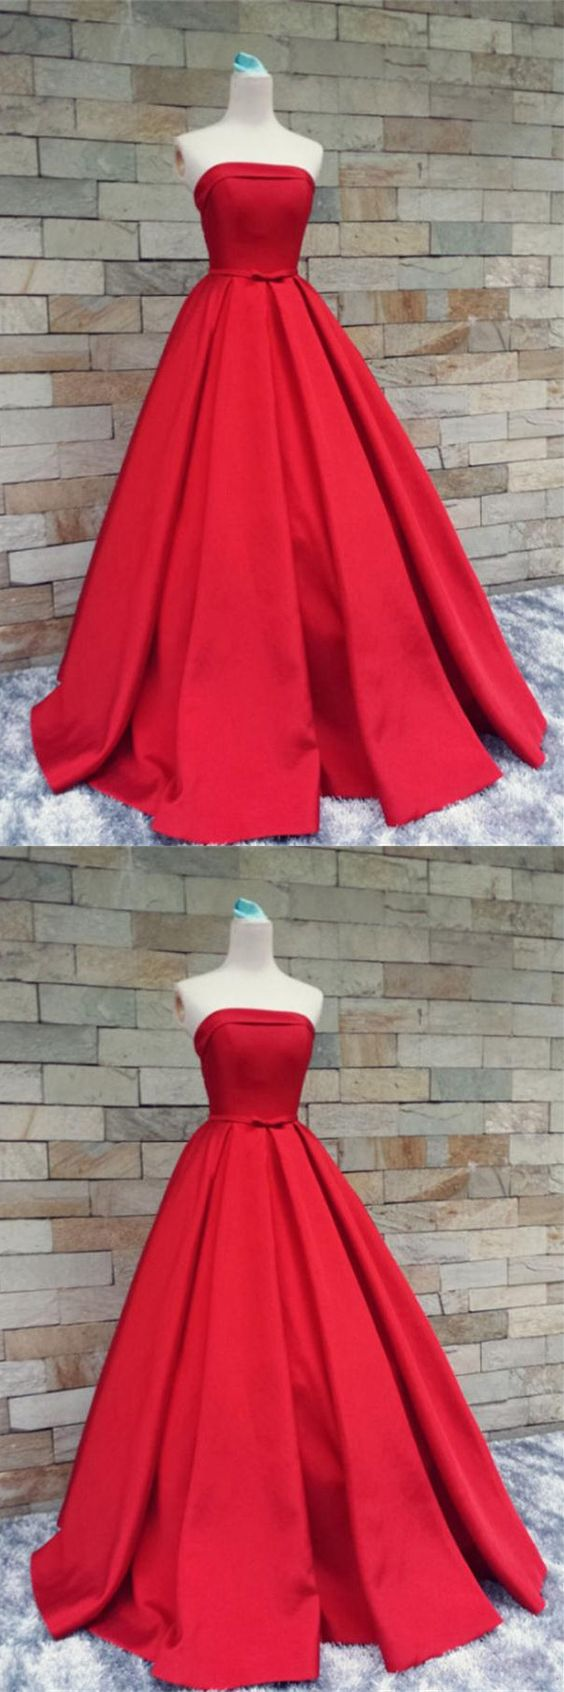 Red Satin Prom Dresses,Strapless Long Prom Gowns,Evening Gowns,Handmade Party Prom Dresses,Modest Prom Gowns, D0935